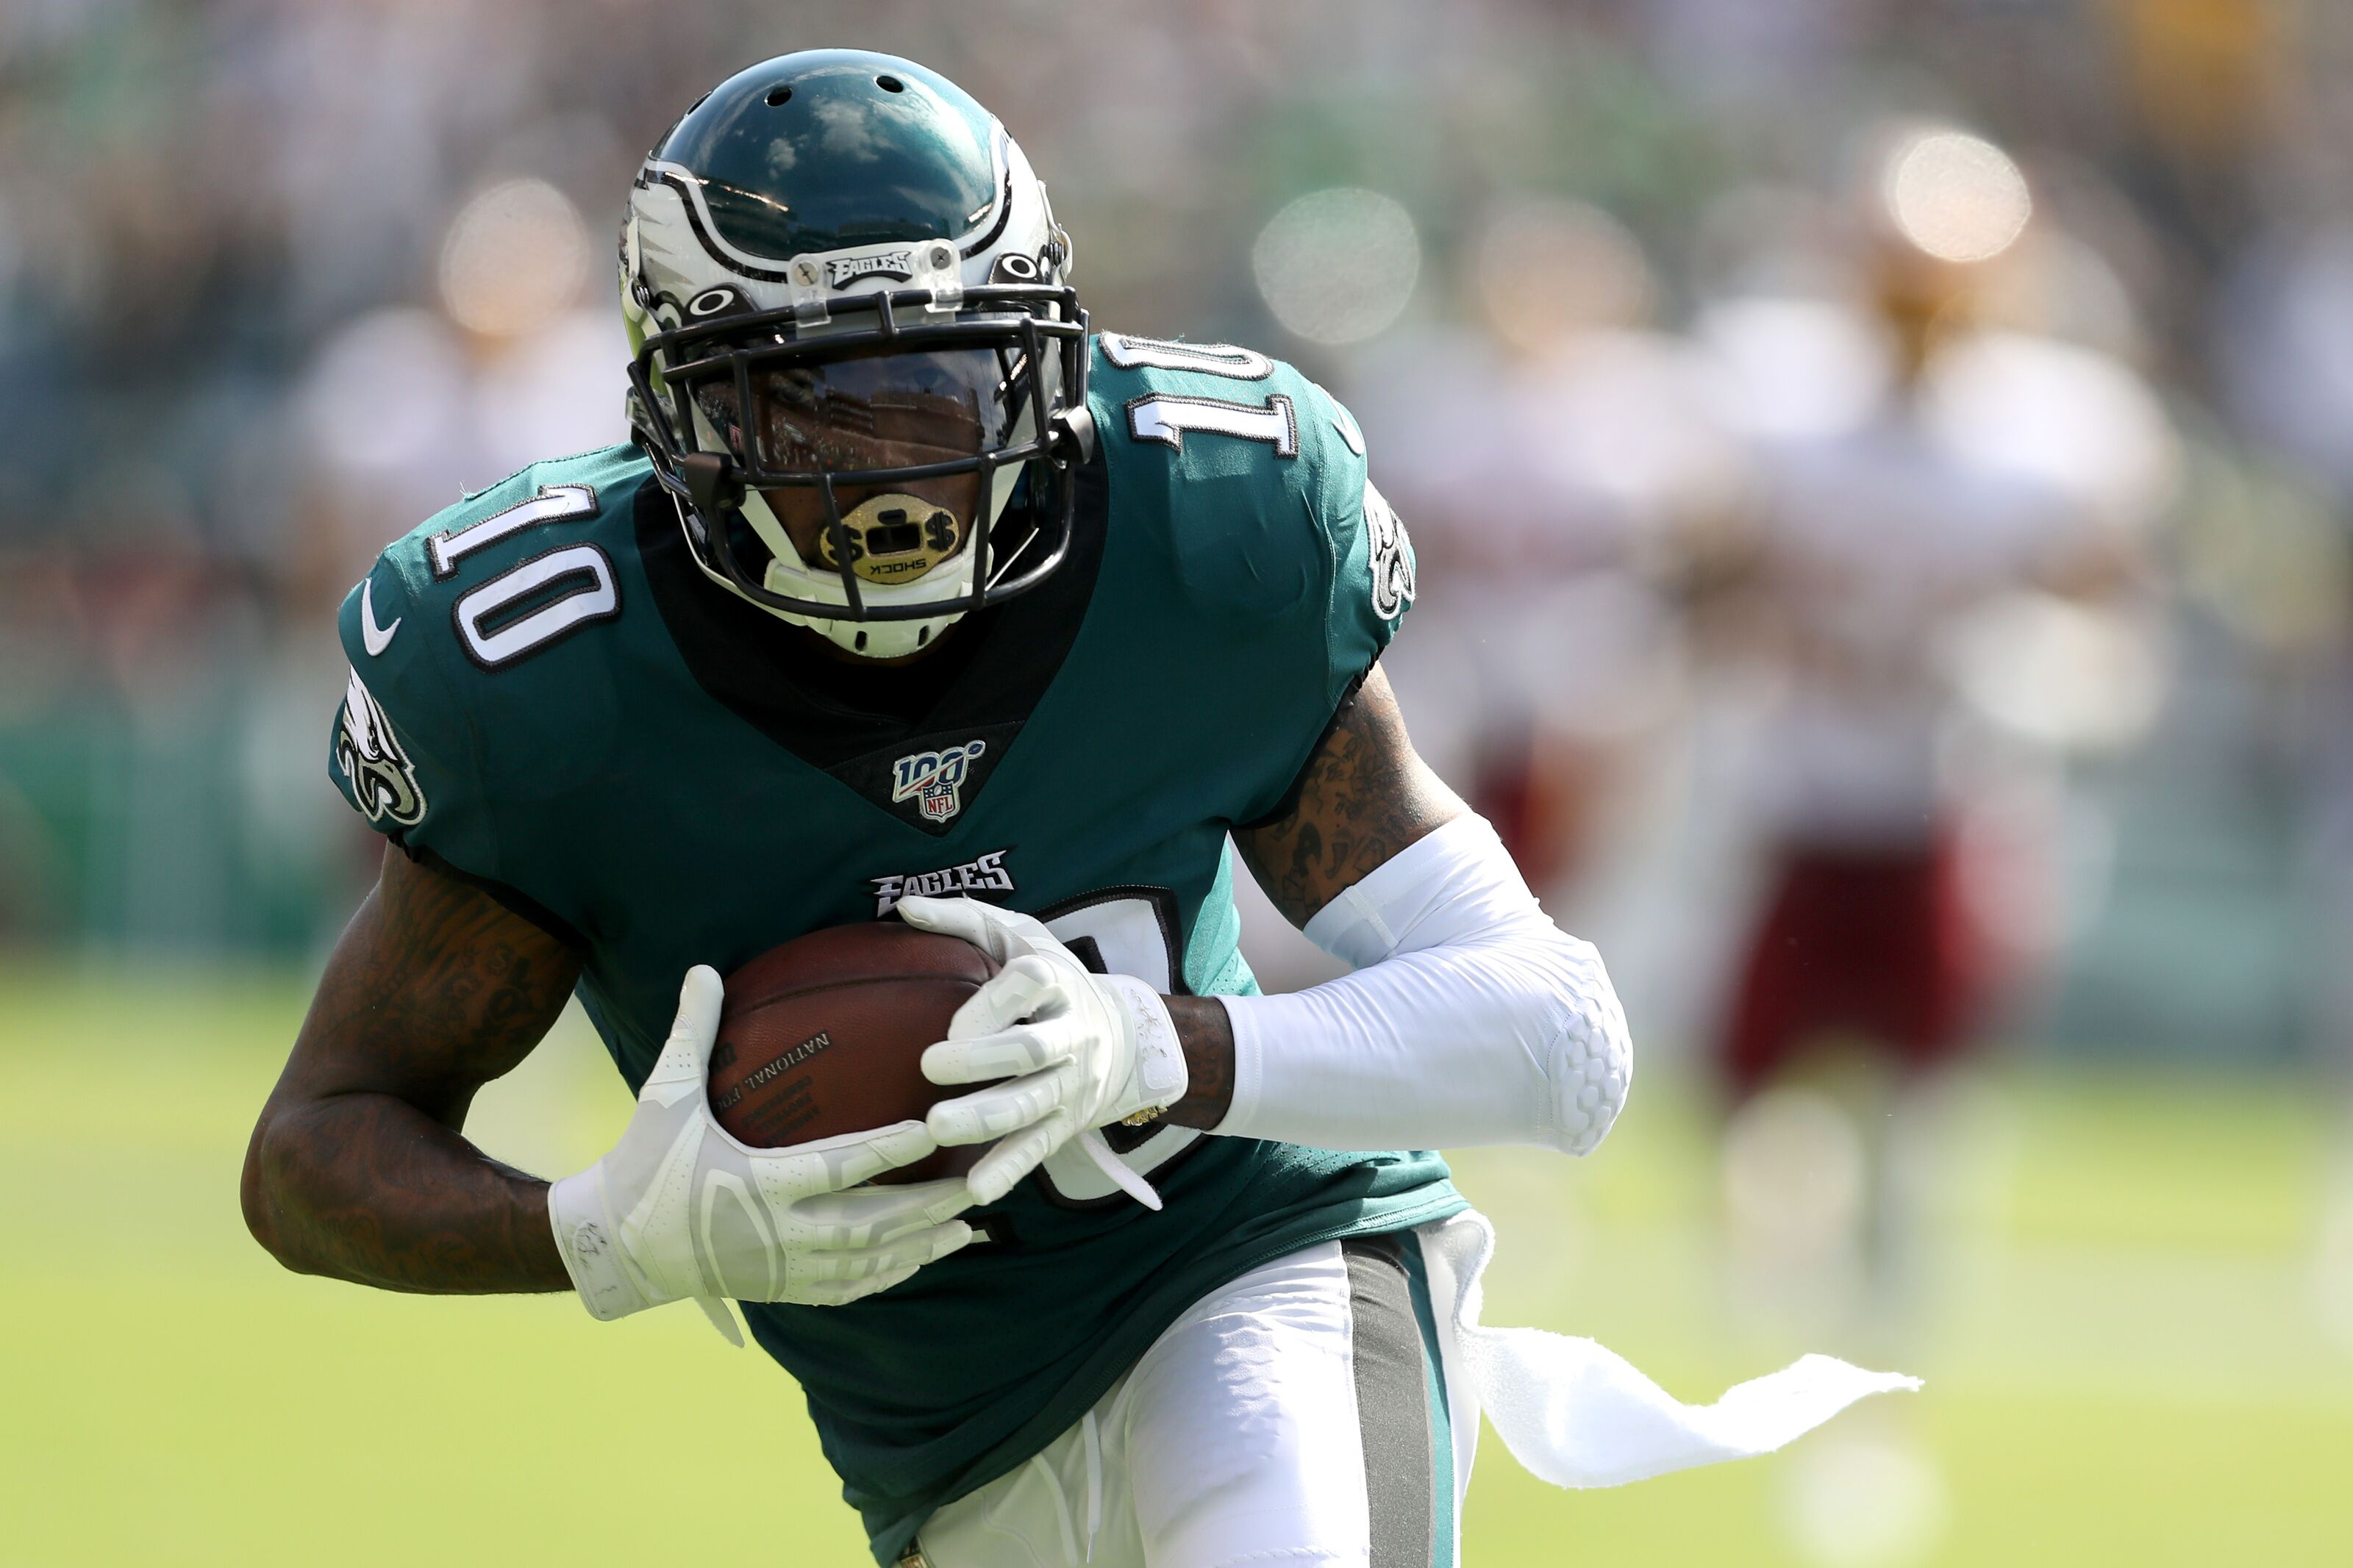 DeSean Jackson's Eagles homecoming came with a price to pay